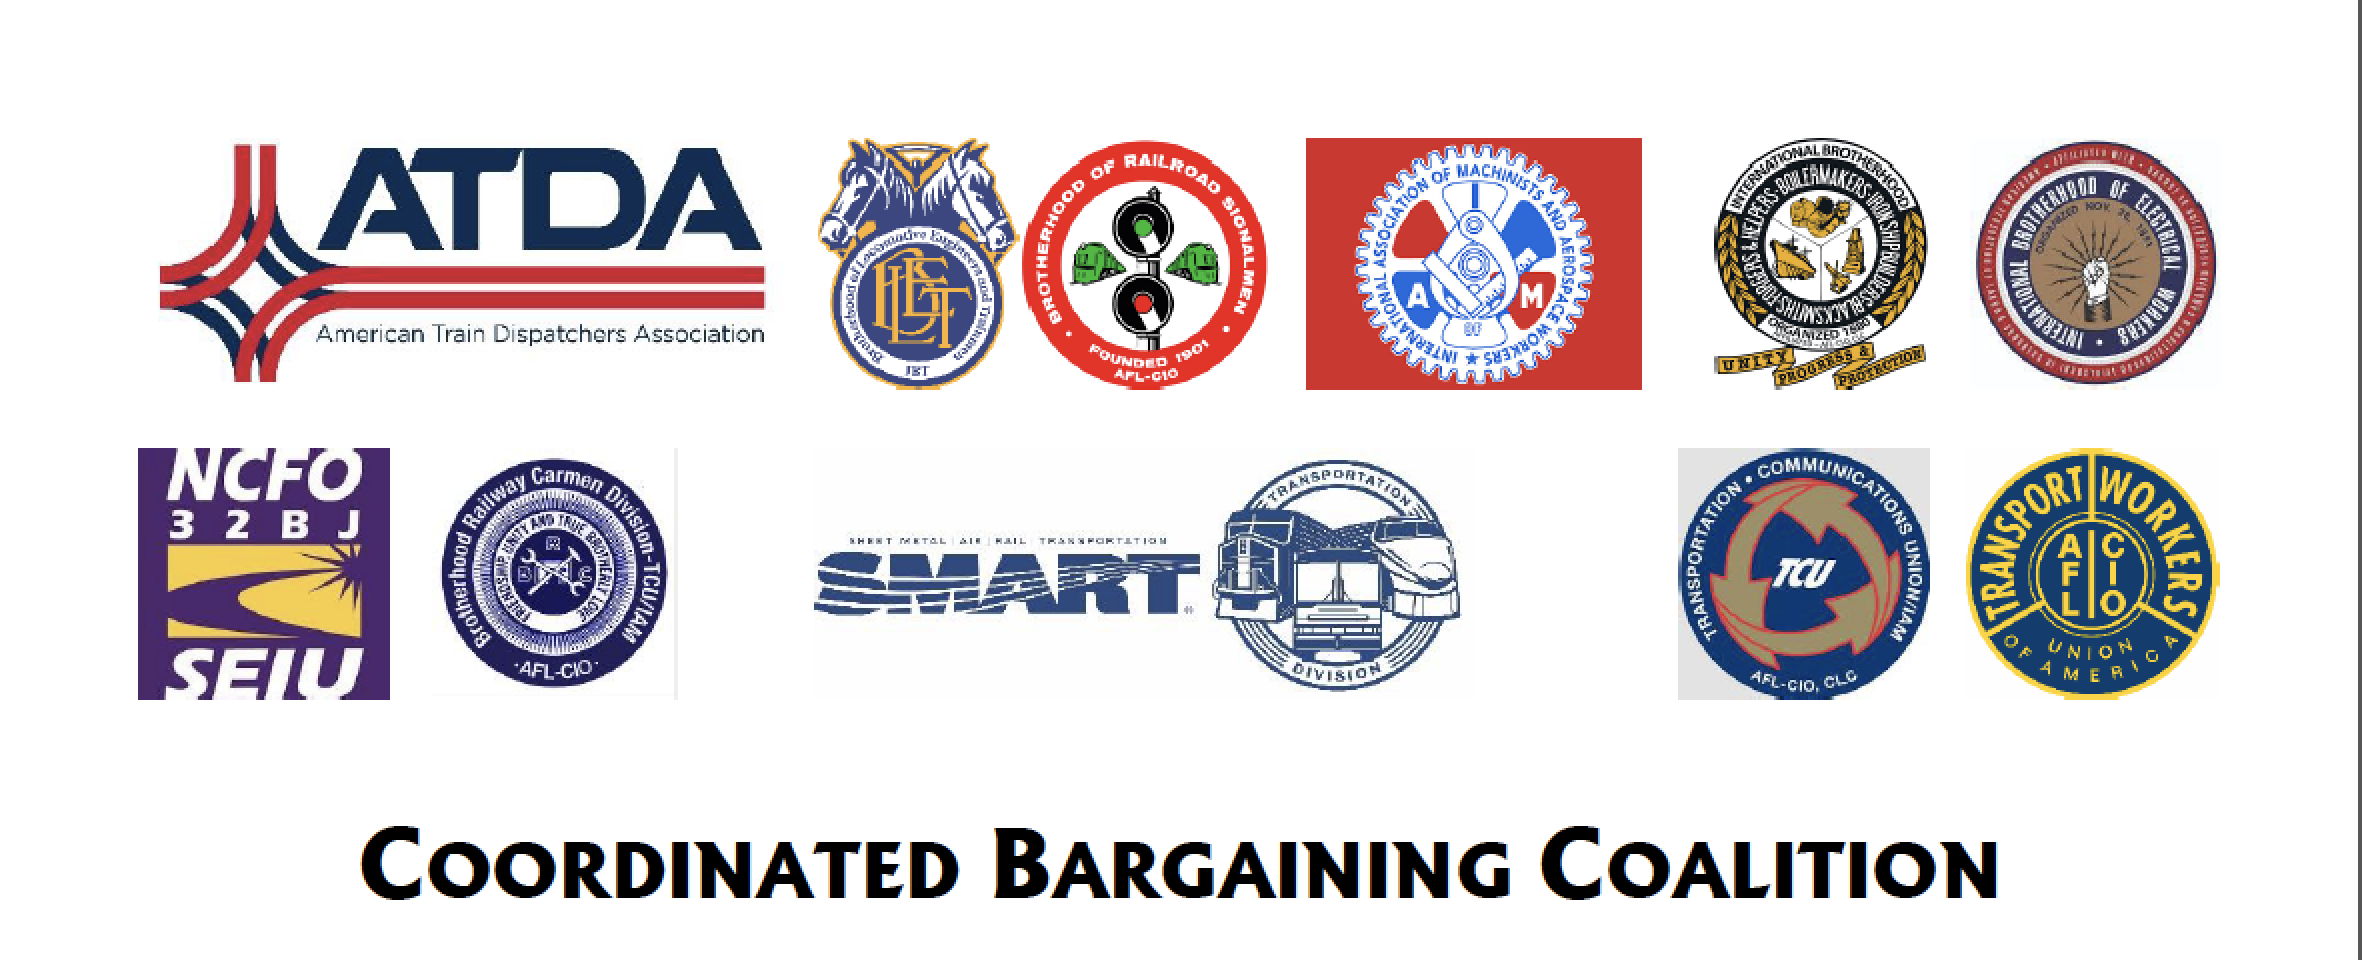 Statement on National Negotiations by the Coordinated Bargaining Coalition